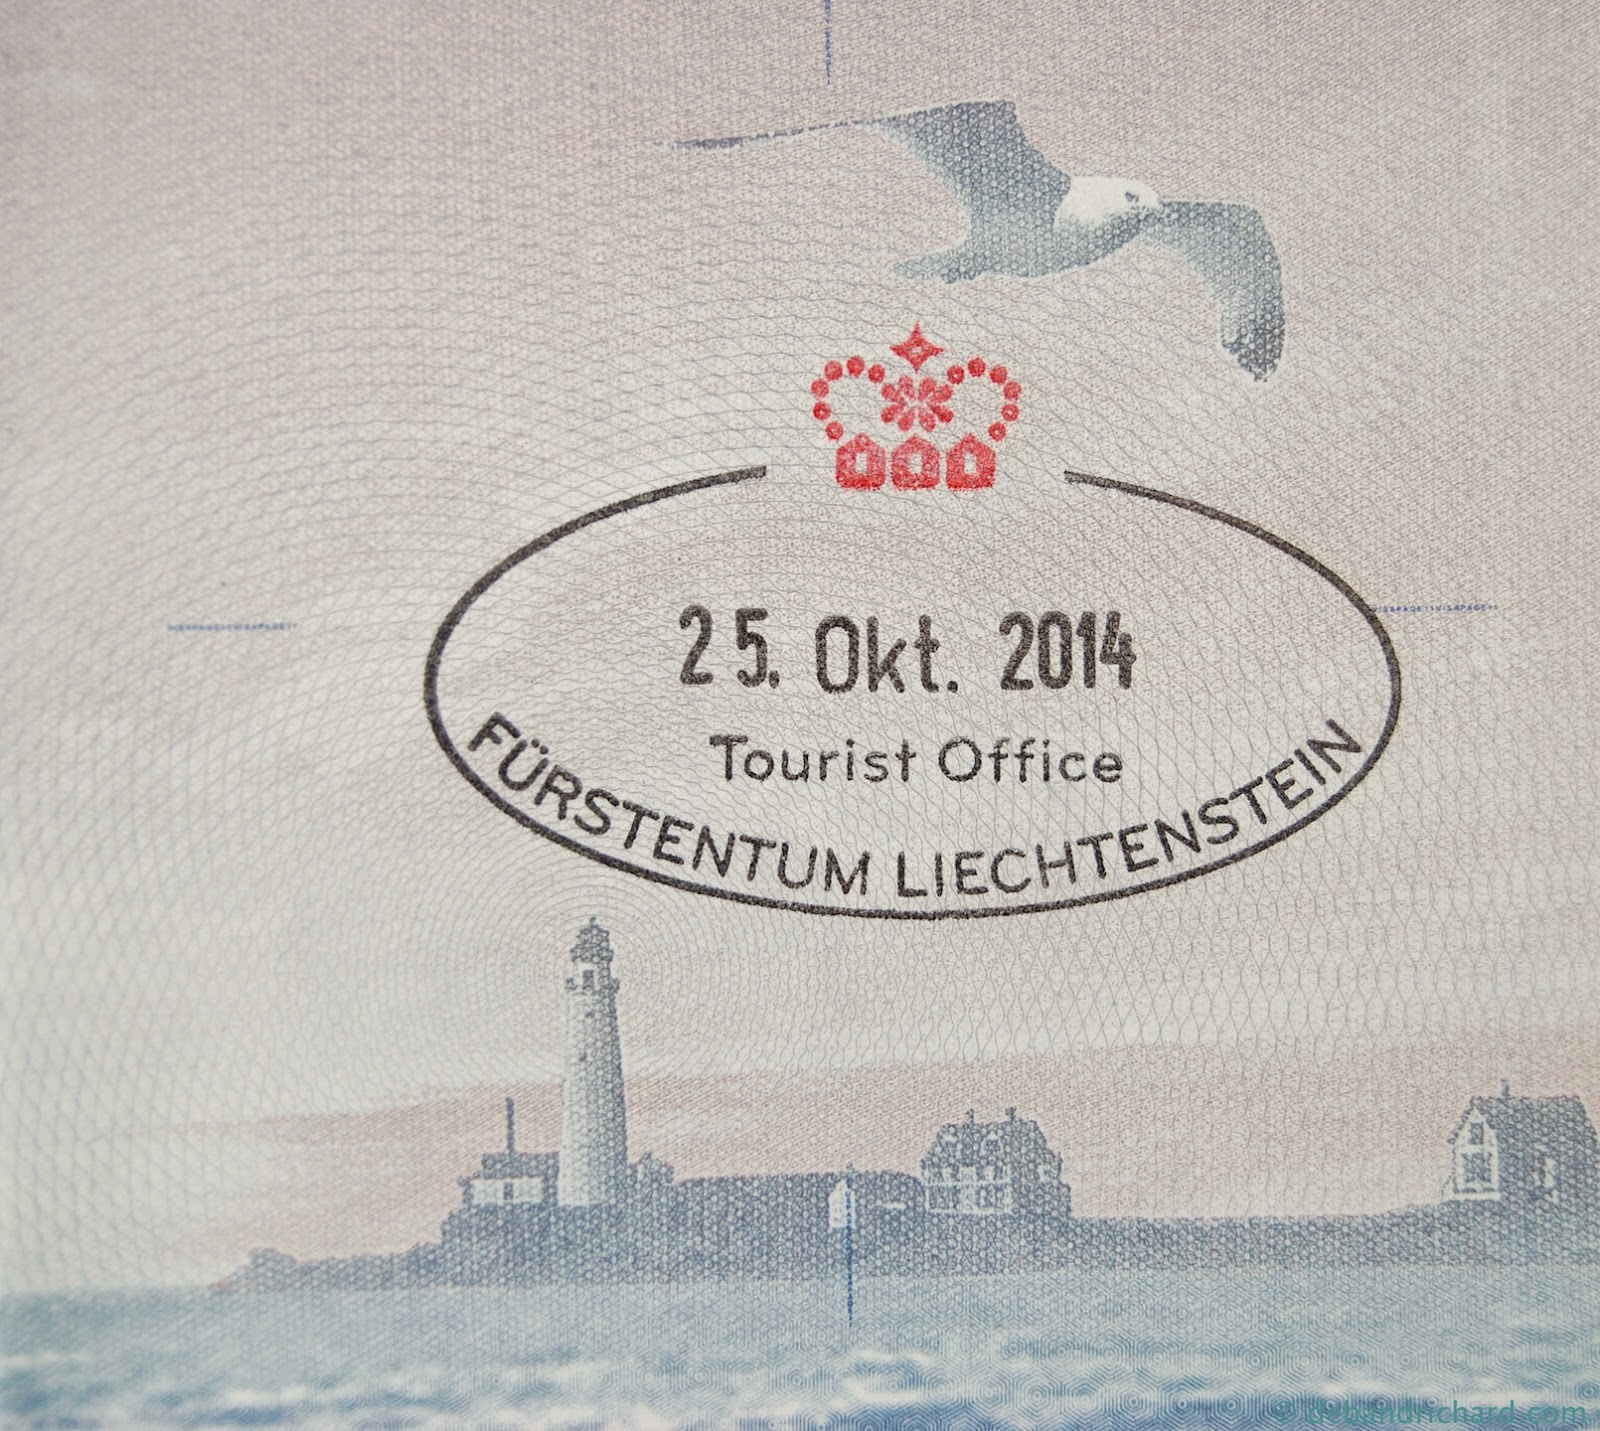 Next stope world fall break adventures vaduz to get the passport stamp you just visit the liechtenstein center i had downloaded a map of the capital city vaduz off their website publicscrutiny Gallery